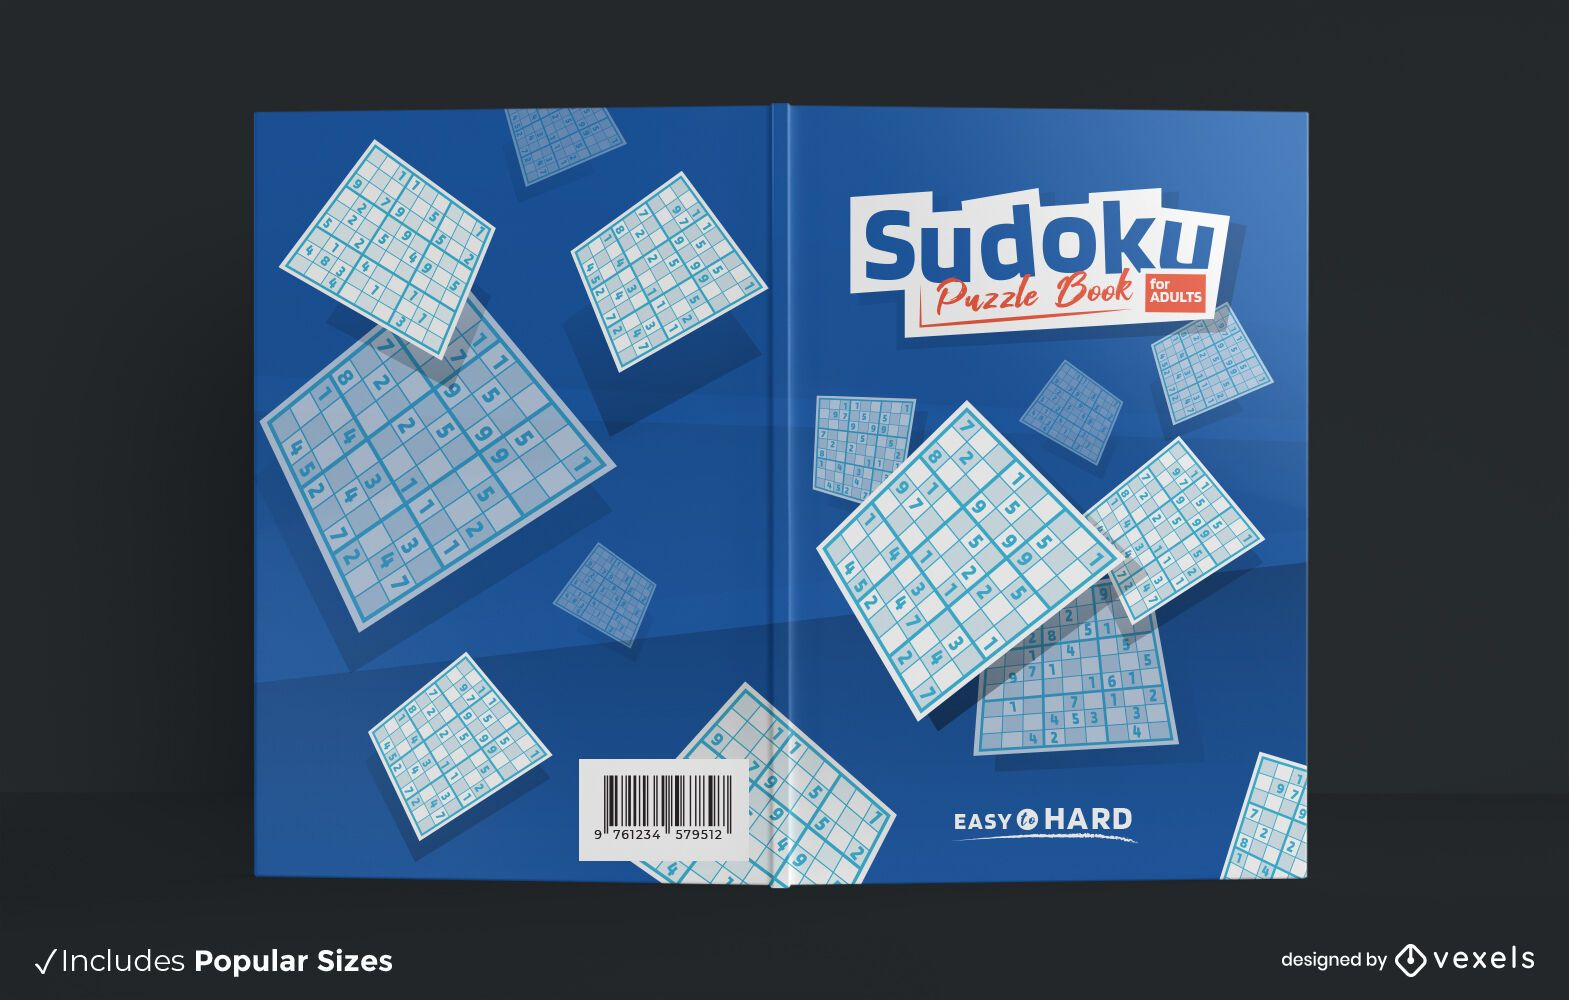 Sudoku puzzle adults book cover design